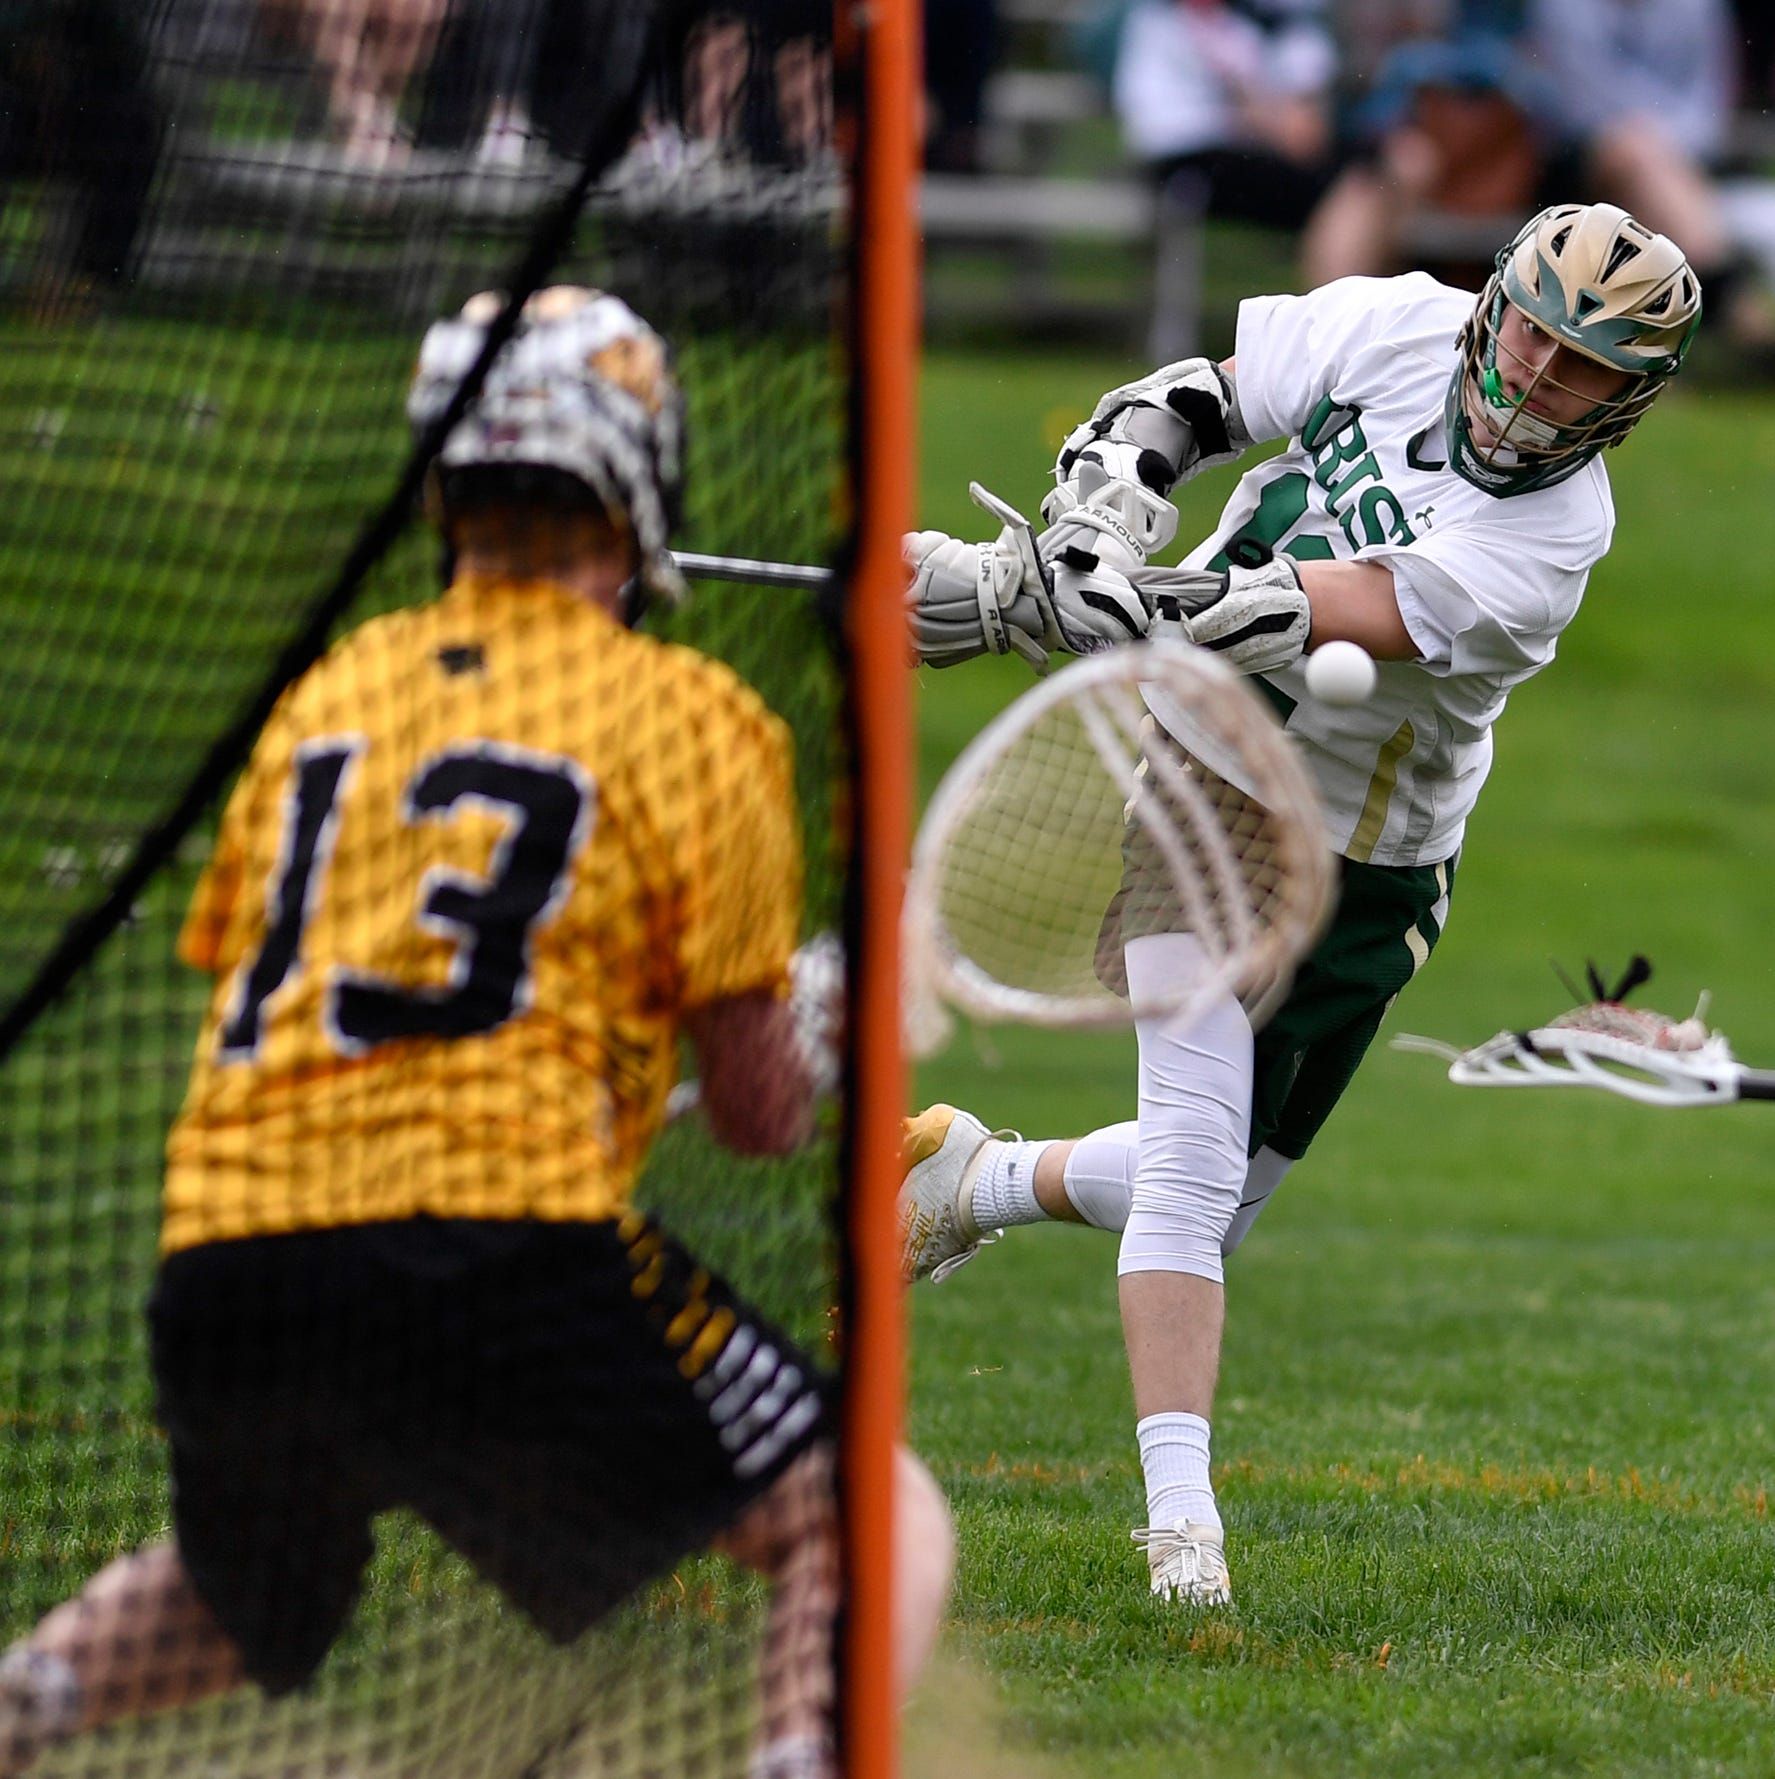 Chandler Hake, Connor Kernan, Ryan Muller earn major York-Adams boys' lacrosse honors